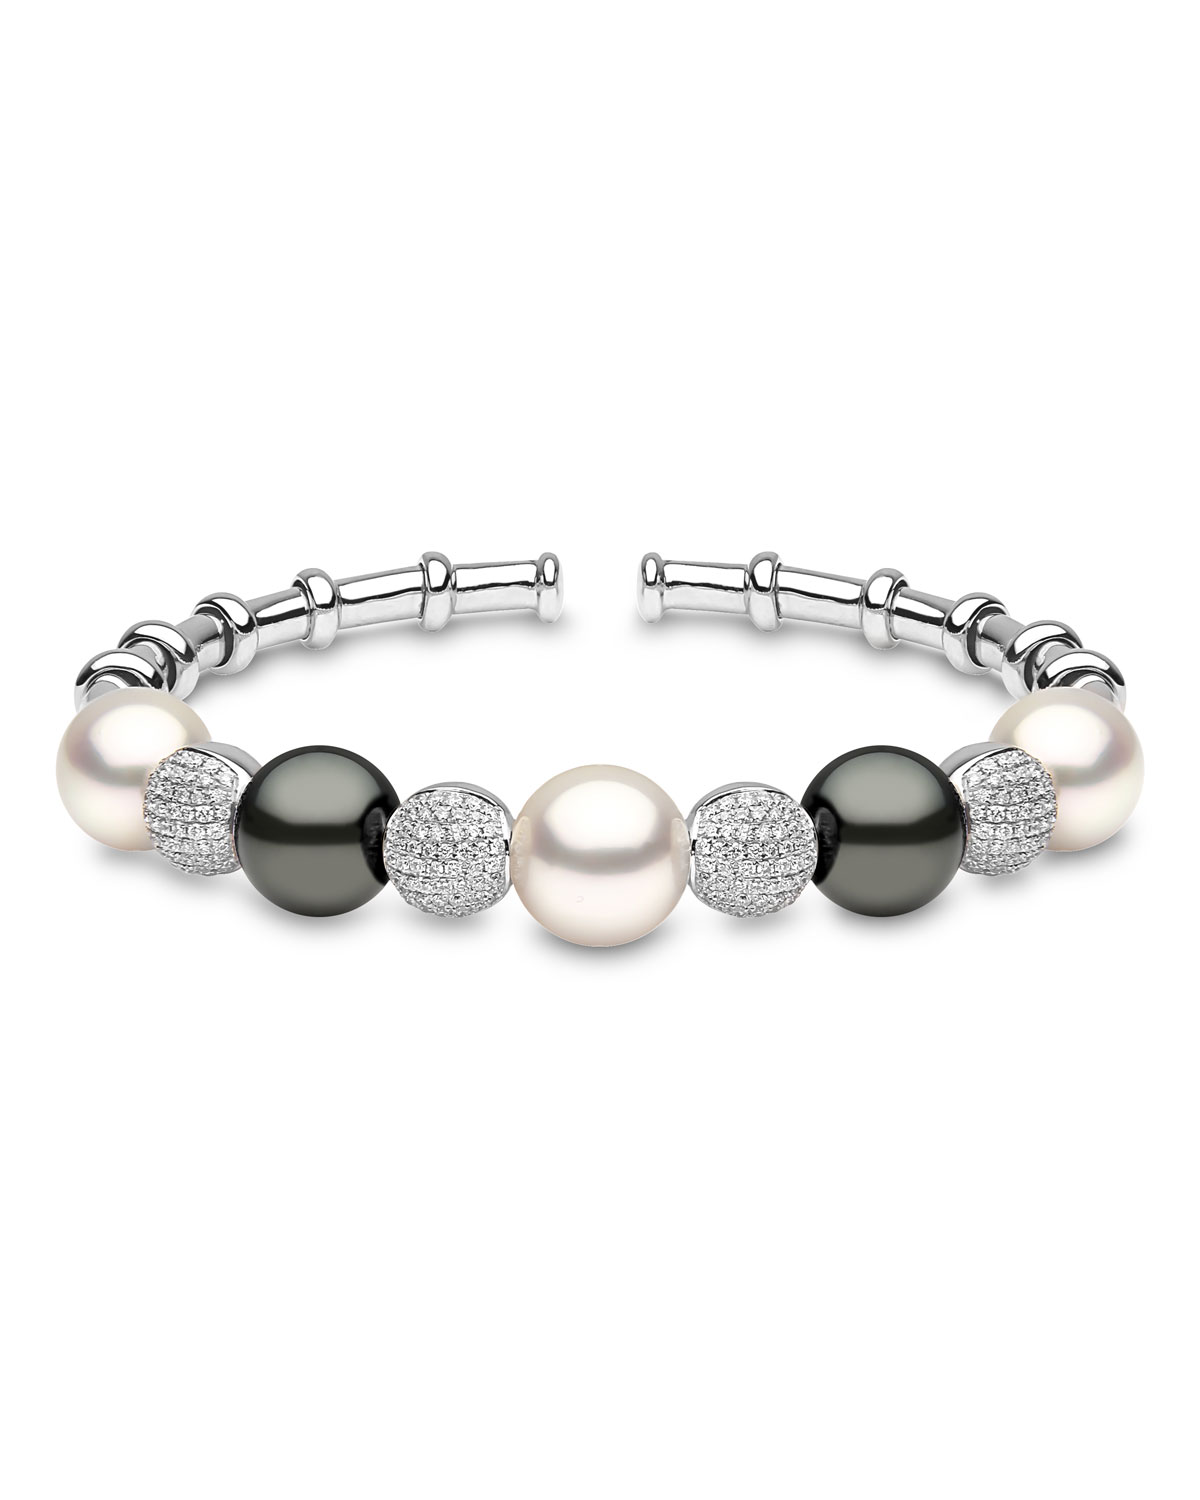 YOKO LONDON 18K White Gold South Sea & Tahitian Pearl Bracelet W/ Diamonds